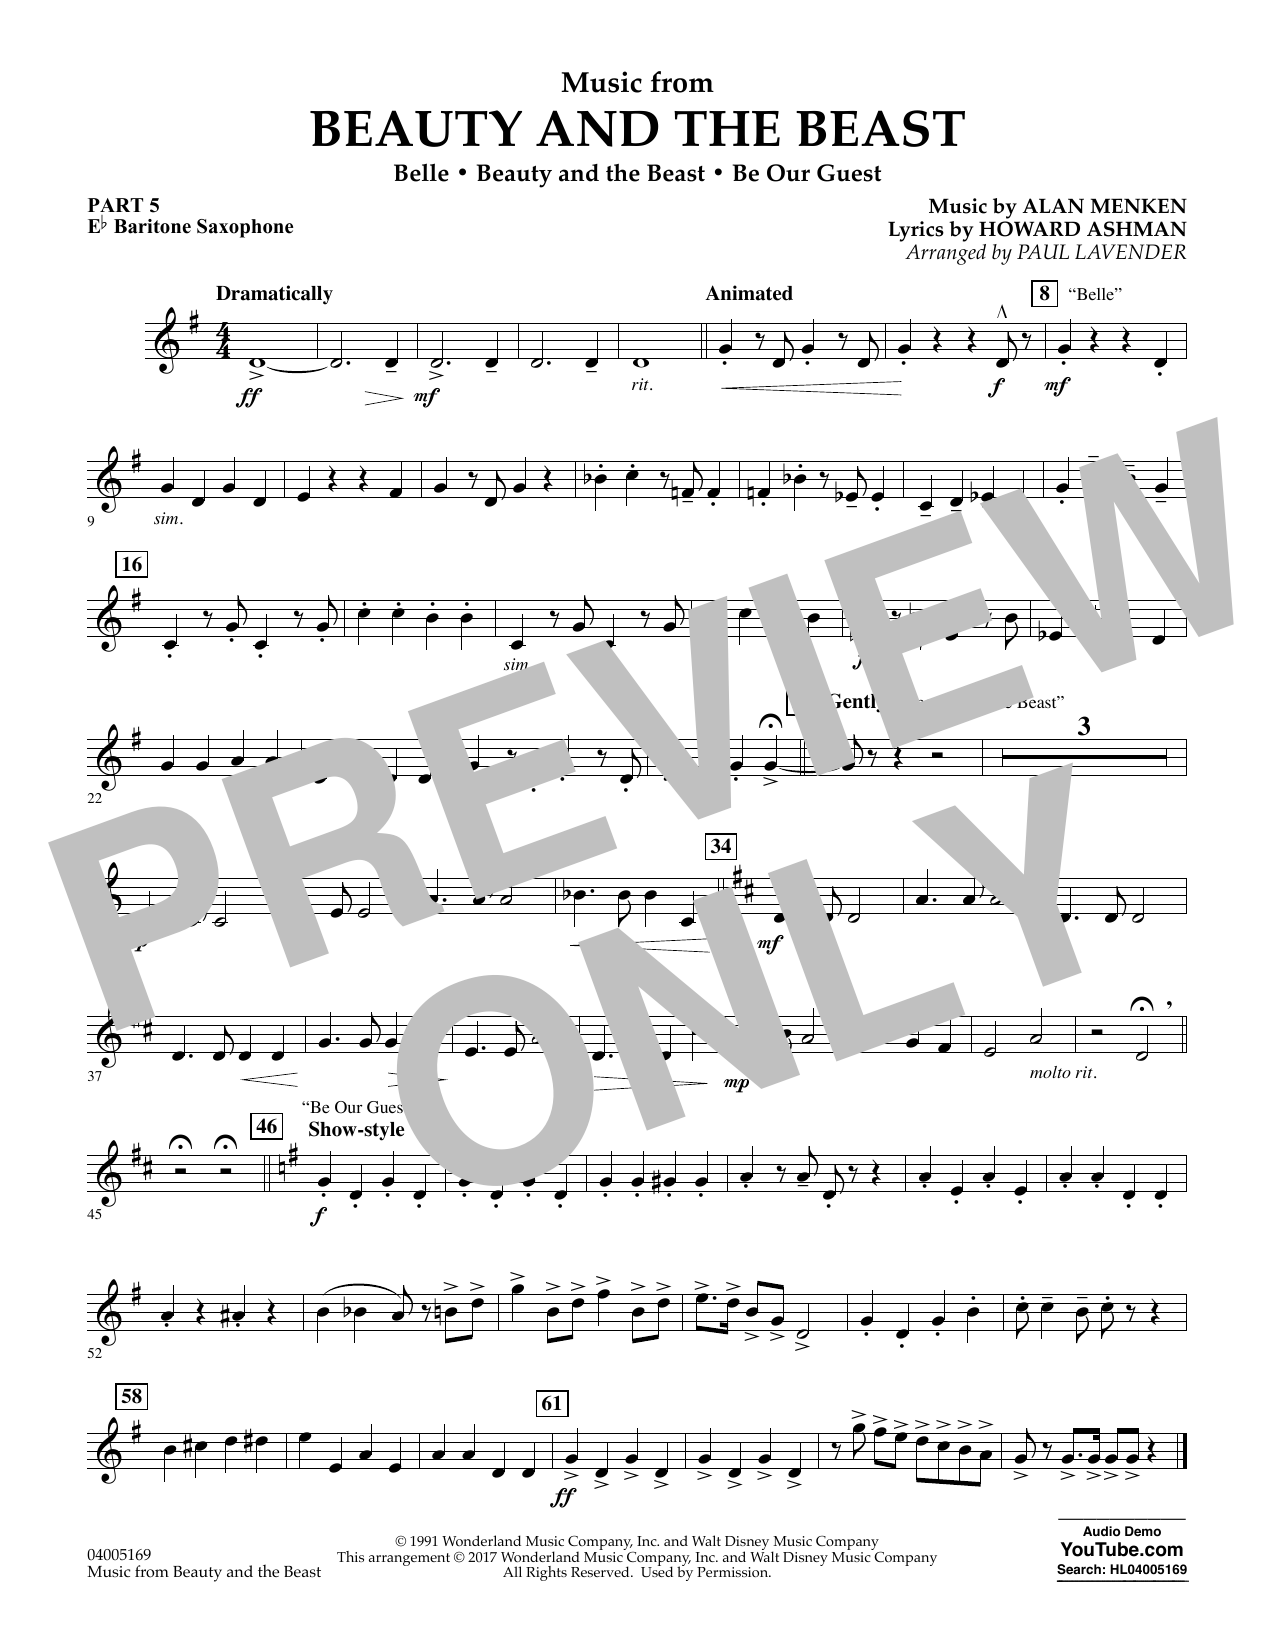 Paul Lavender Music from Beauty and the Beast - Pt.5 - Eb Baritone Saxophone sheet music notes and chords. Download Printable PDF.